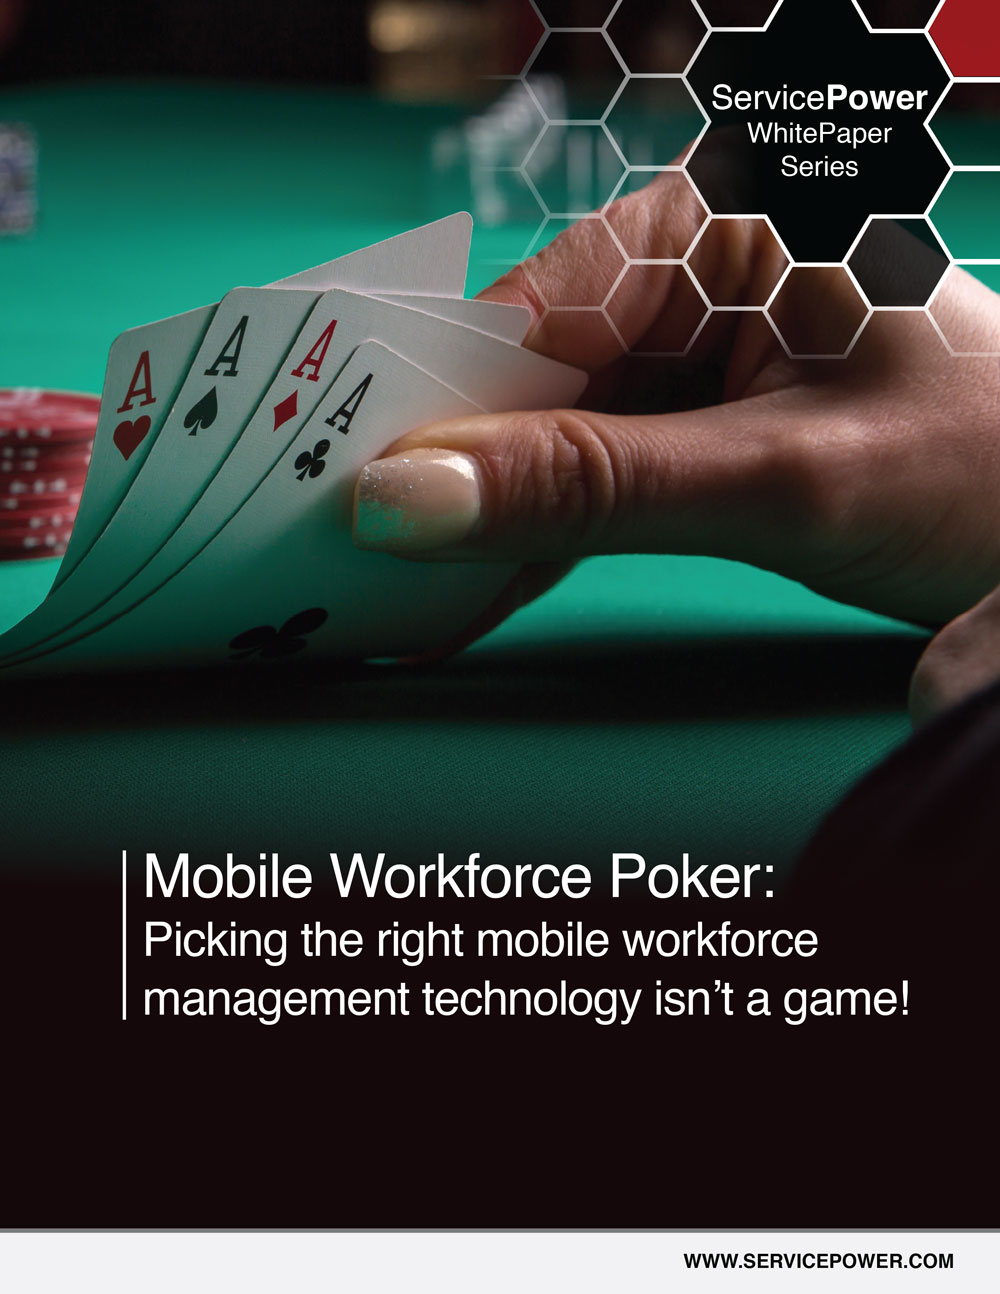 Free Whitepaper - Picking the Right Mobile Workforce Management Technology Isn't a Game!